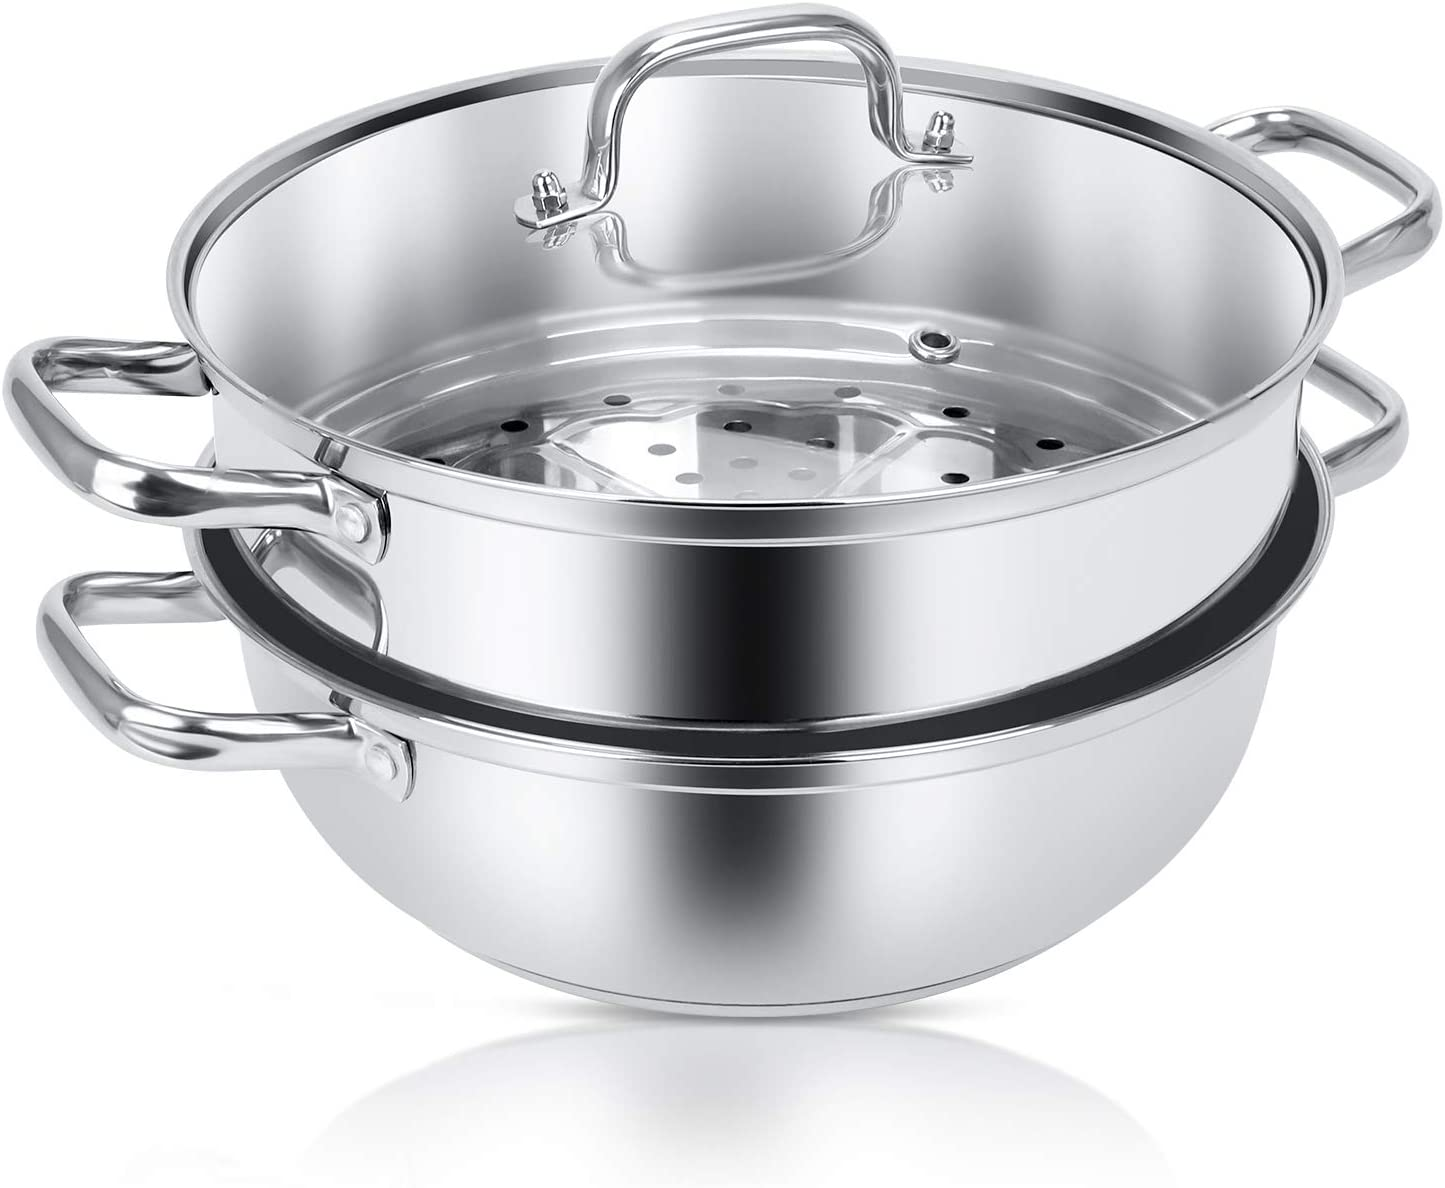 Jeekscss 304 Stainless Steel Steamer Cookware,Physical Anti-stick Pot Design,Sauce Pan with Glass Lid, Double Handle,Multi-purpose Steamer Saucepot Double Boiler,Dishwasher Safe